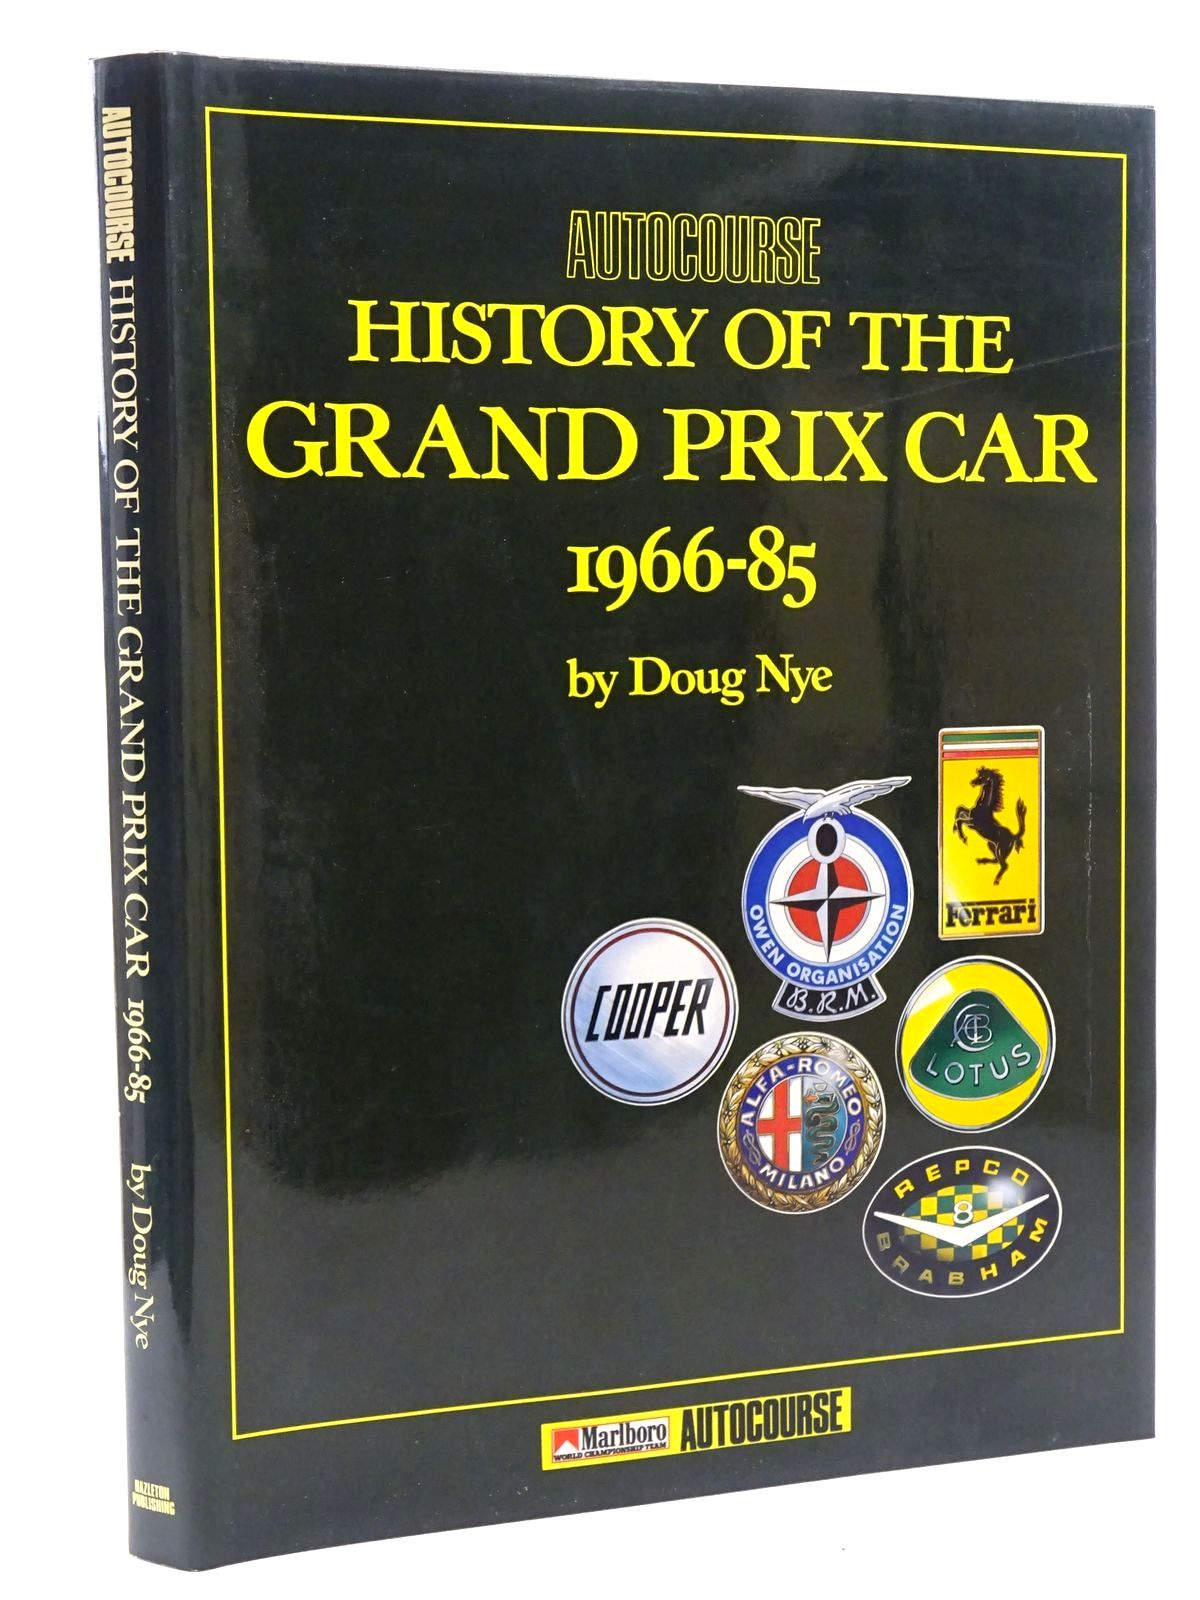 Photo of THE AUTOCOURSE HISTORY OF THE GRAND PRIX CAR 1966-1985 written by Nye, Doug published by Hazleton Publishing (STOCK CODE: 1610362)  for sale by Stella & Rose's Books